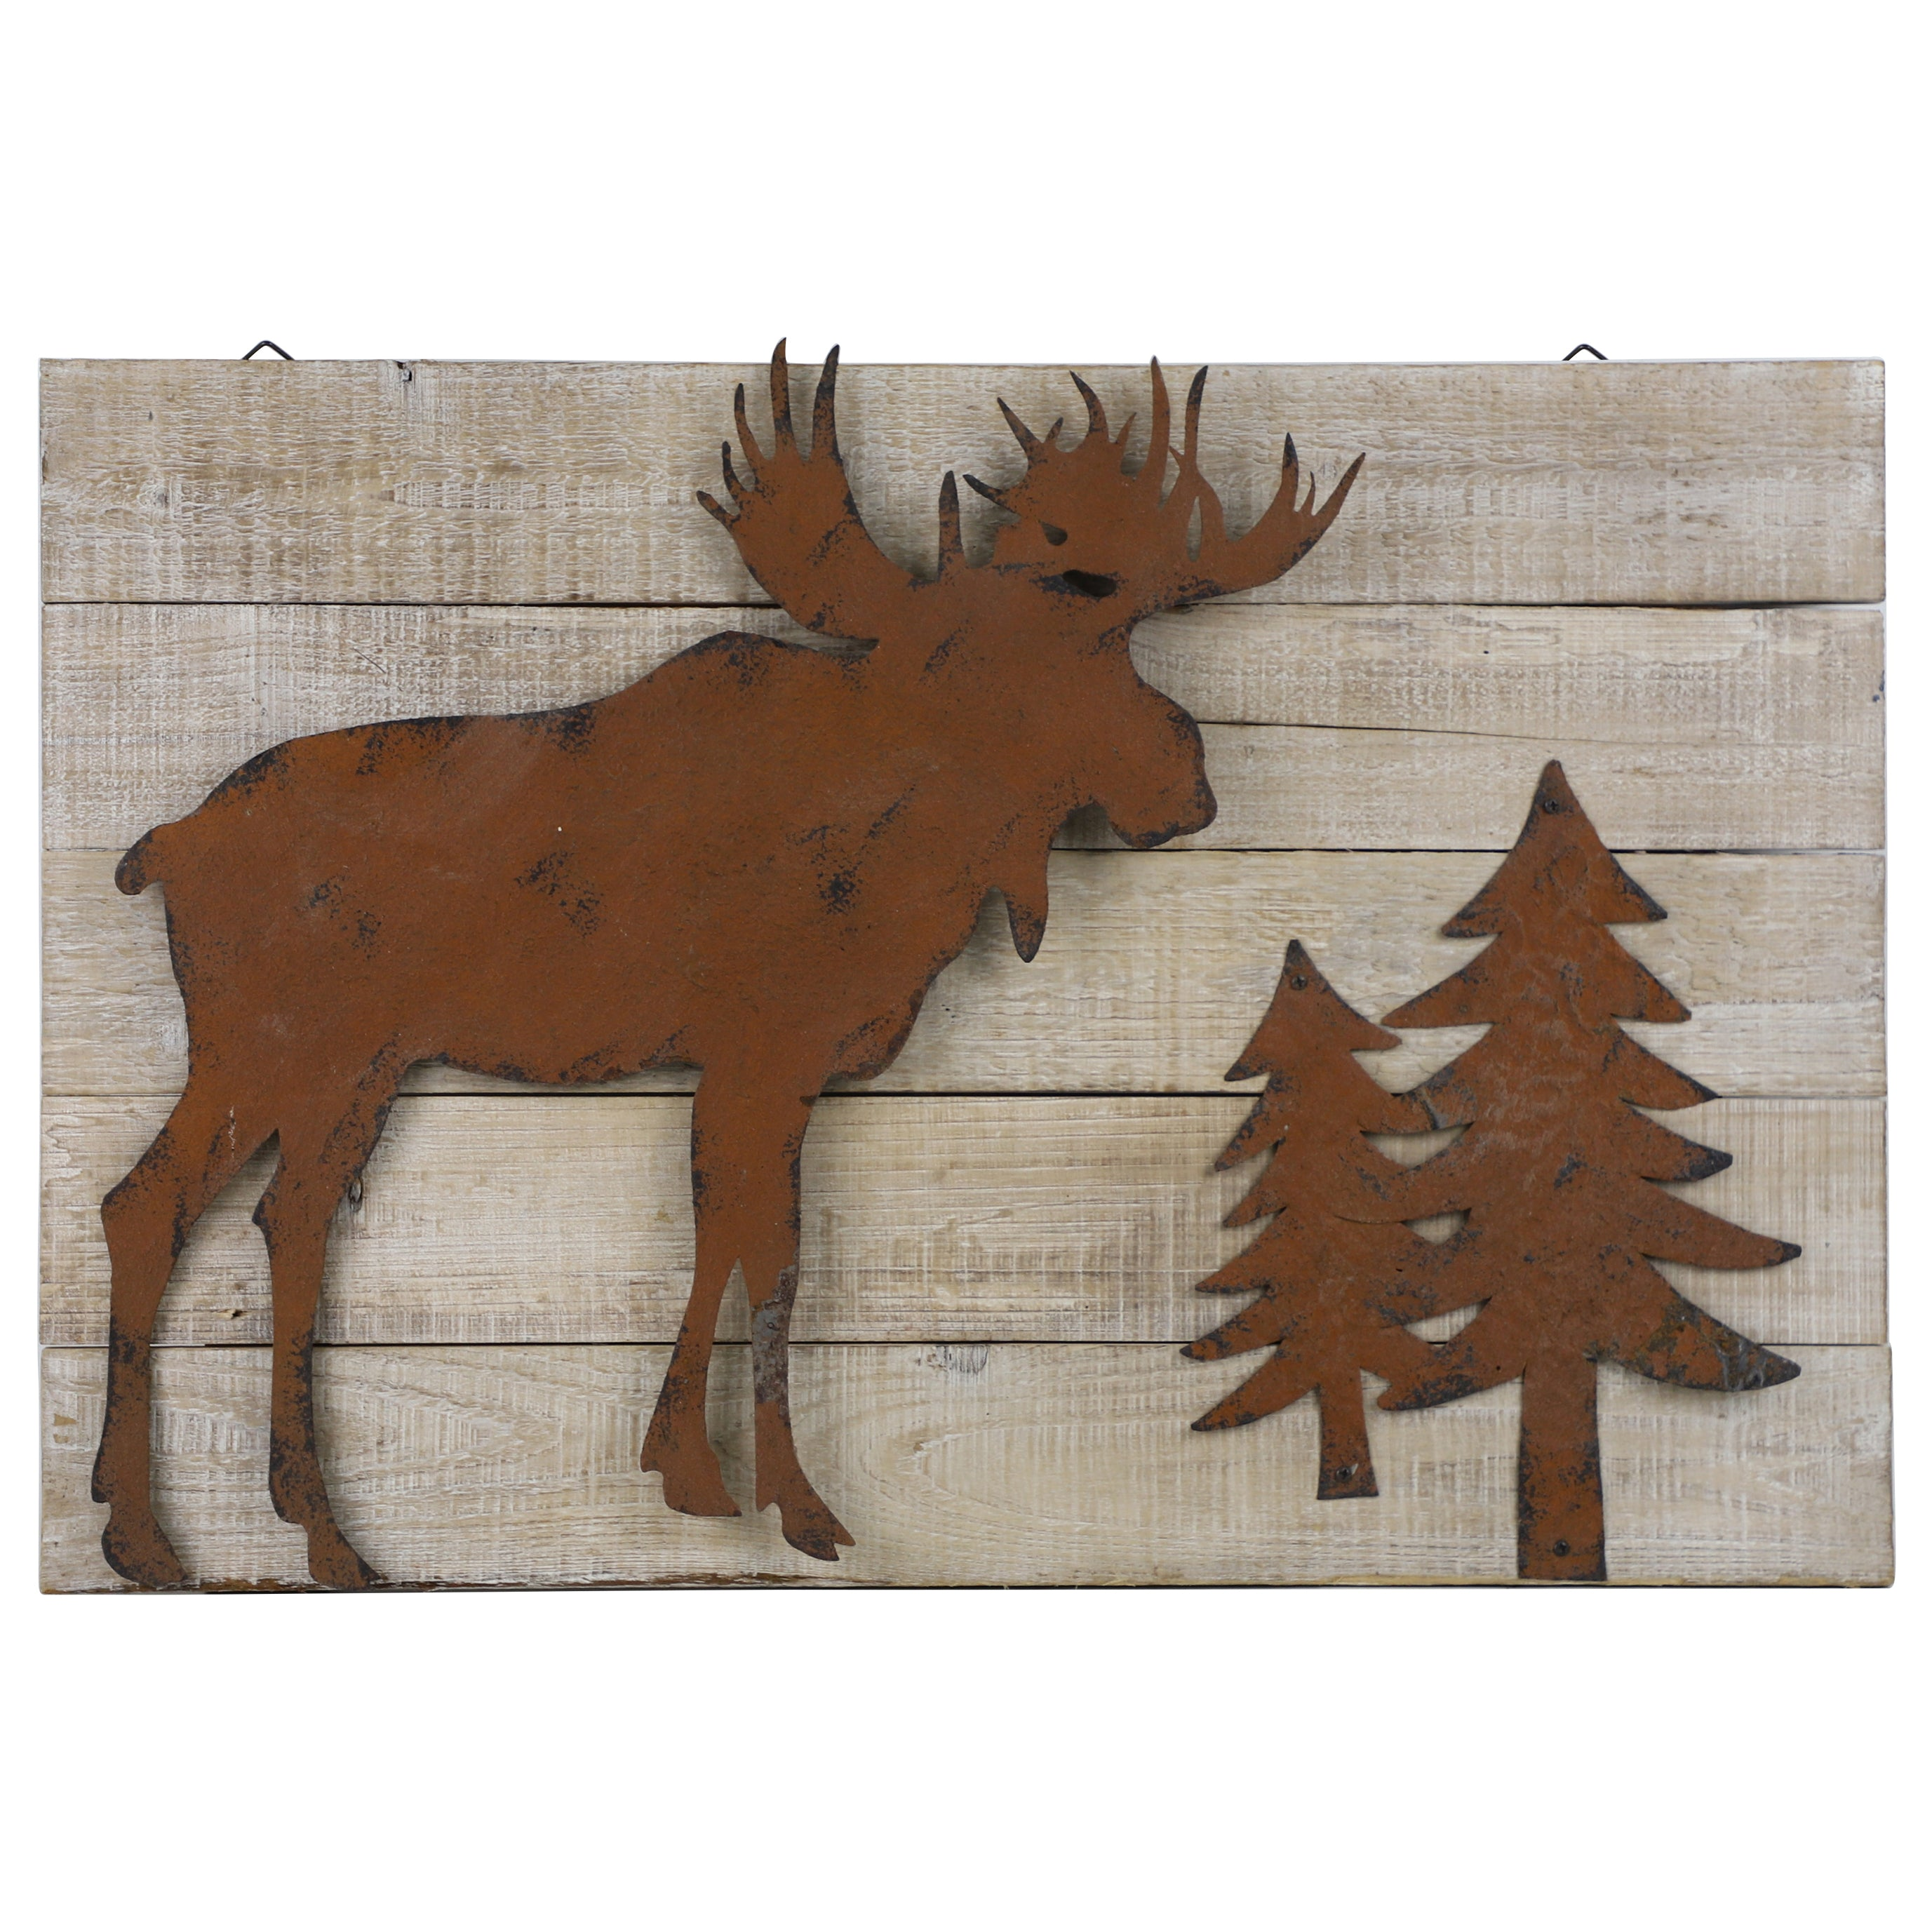 Rustic Wall Decor - Distressed Wood Moose Metal Cutout by HiEnd Accents